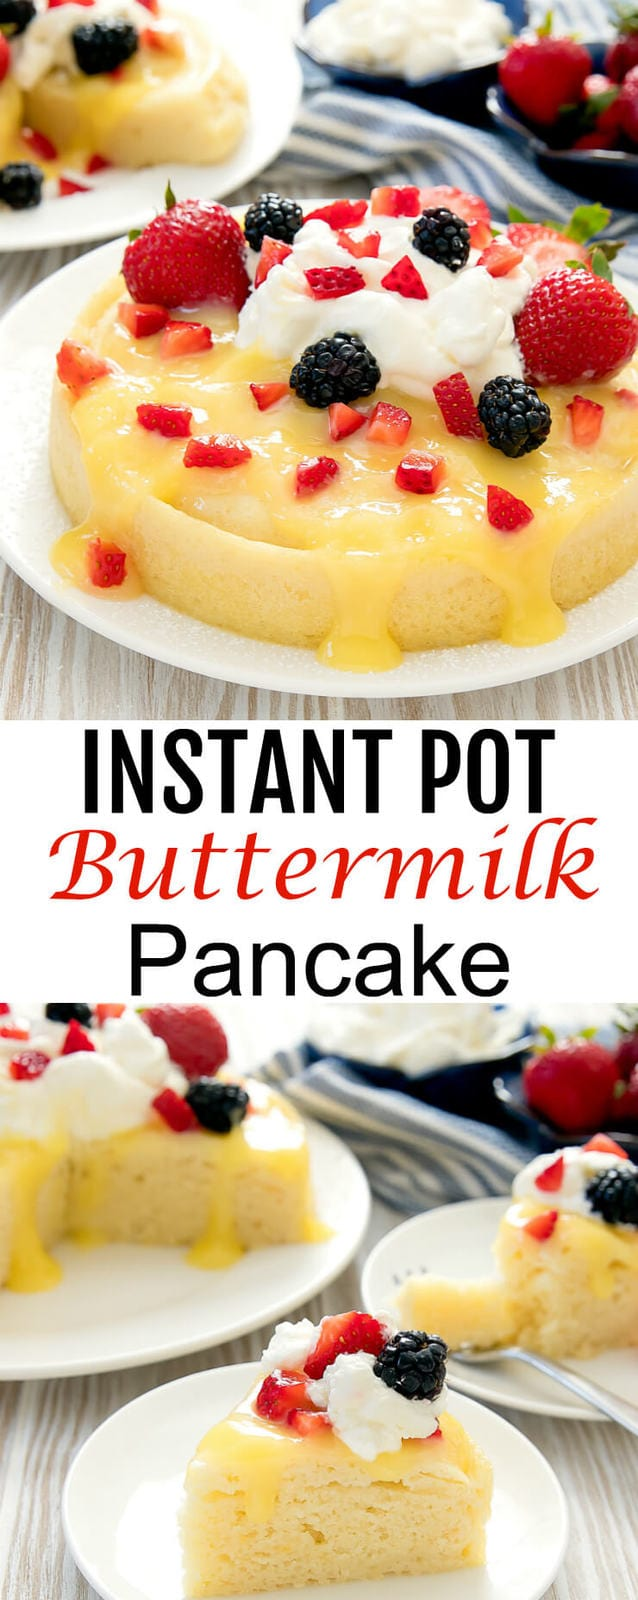 Instant Pot Buttermilk Pancake. A giant buttermilk pancake cooked in the Instant. It's a fun and easy brunch recipe!